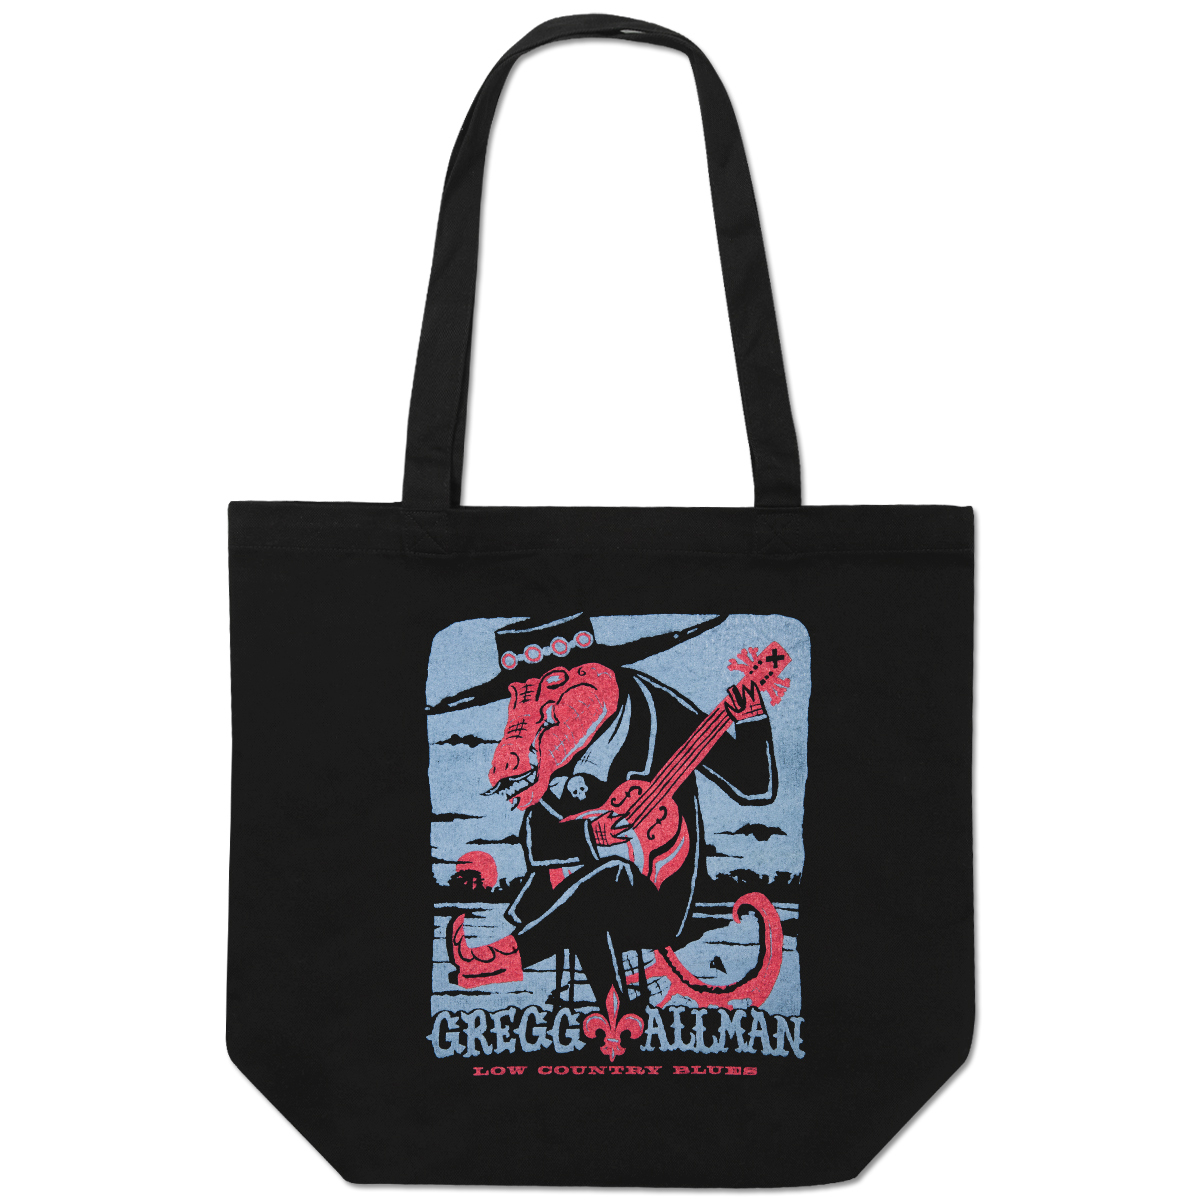 Gregg Allman Low Country Blues Tote Bag